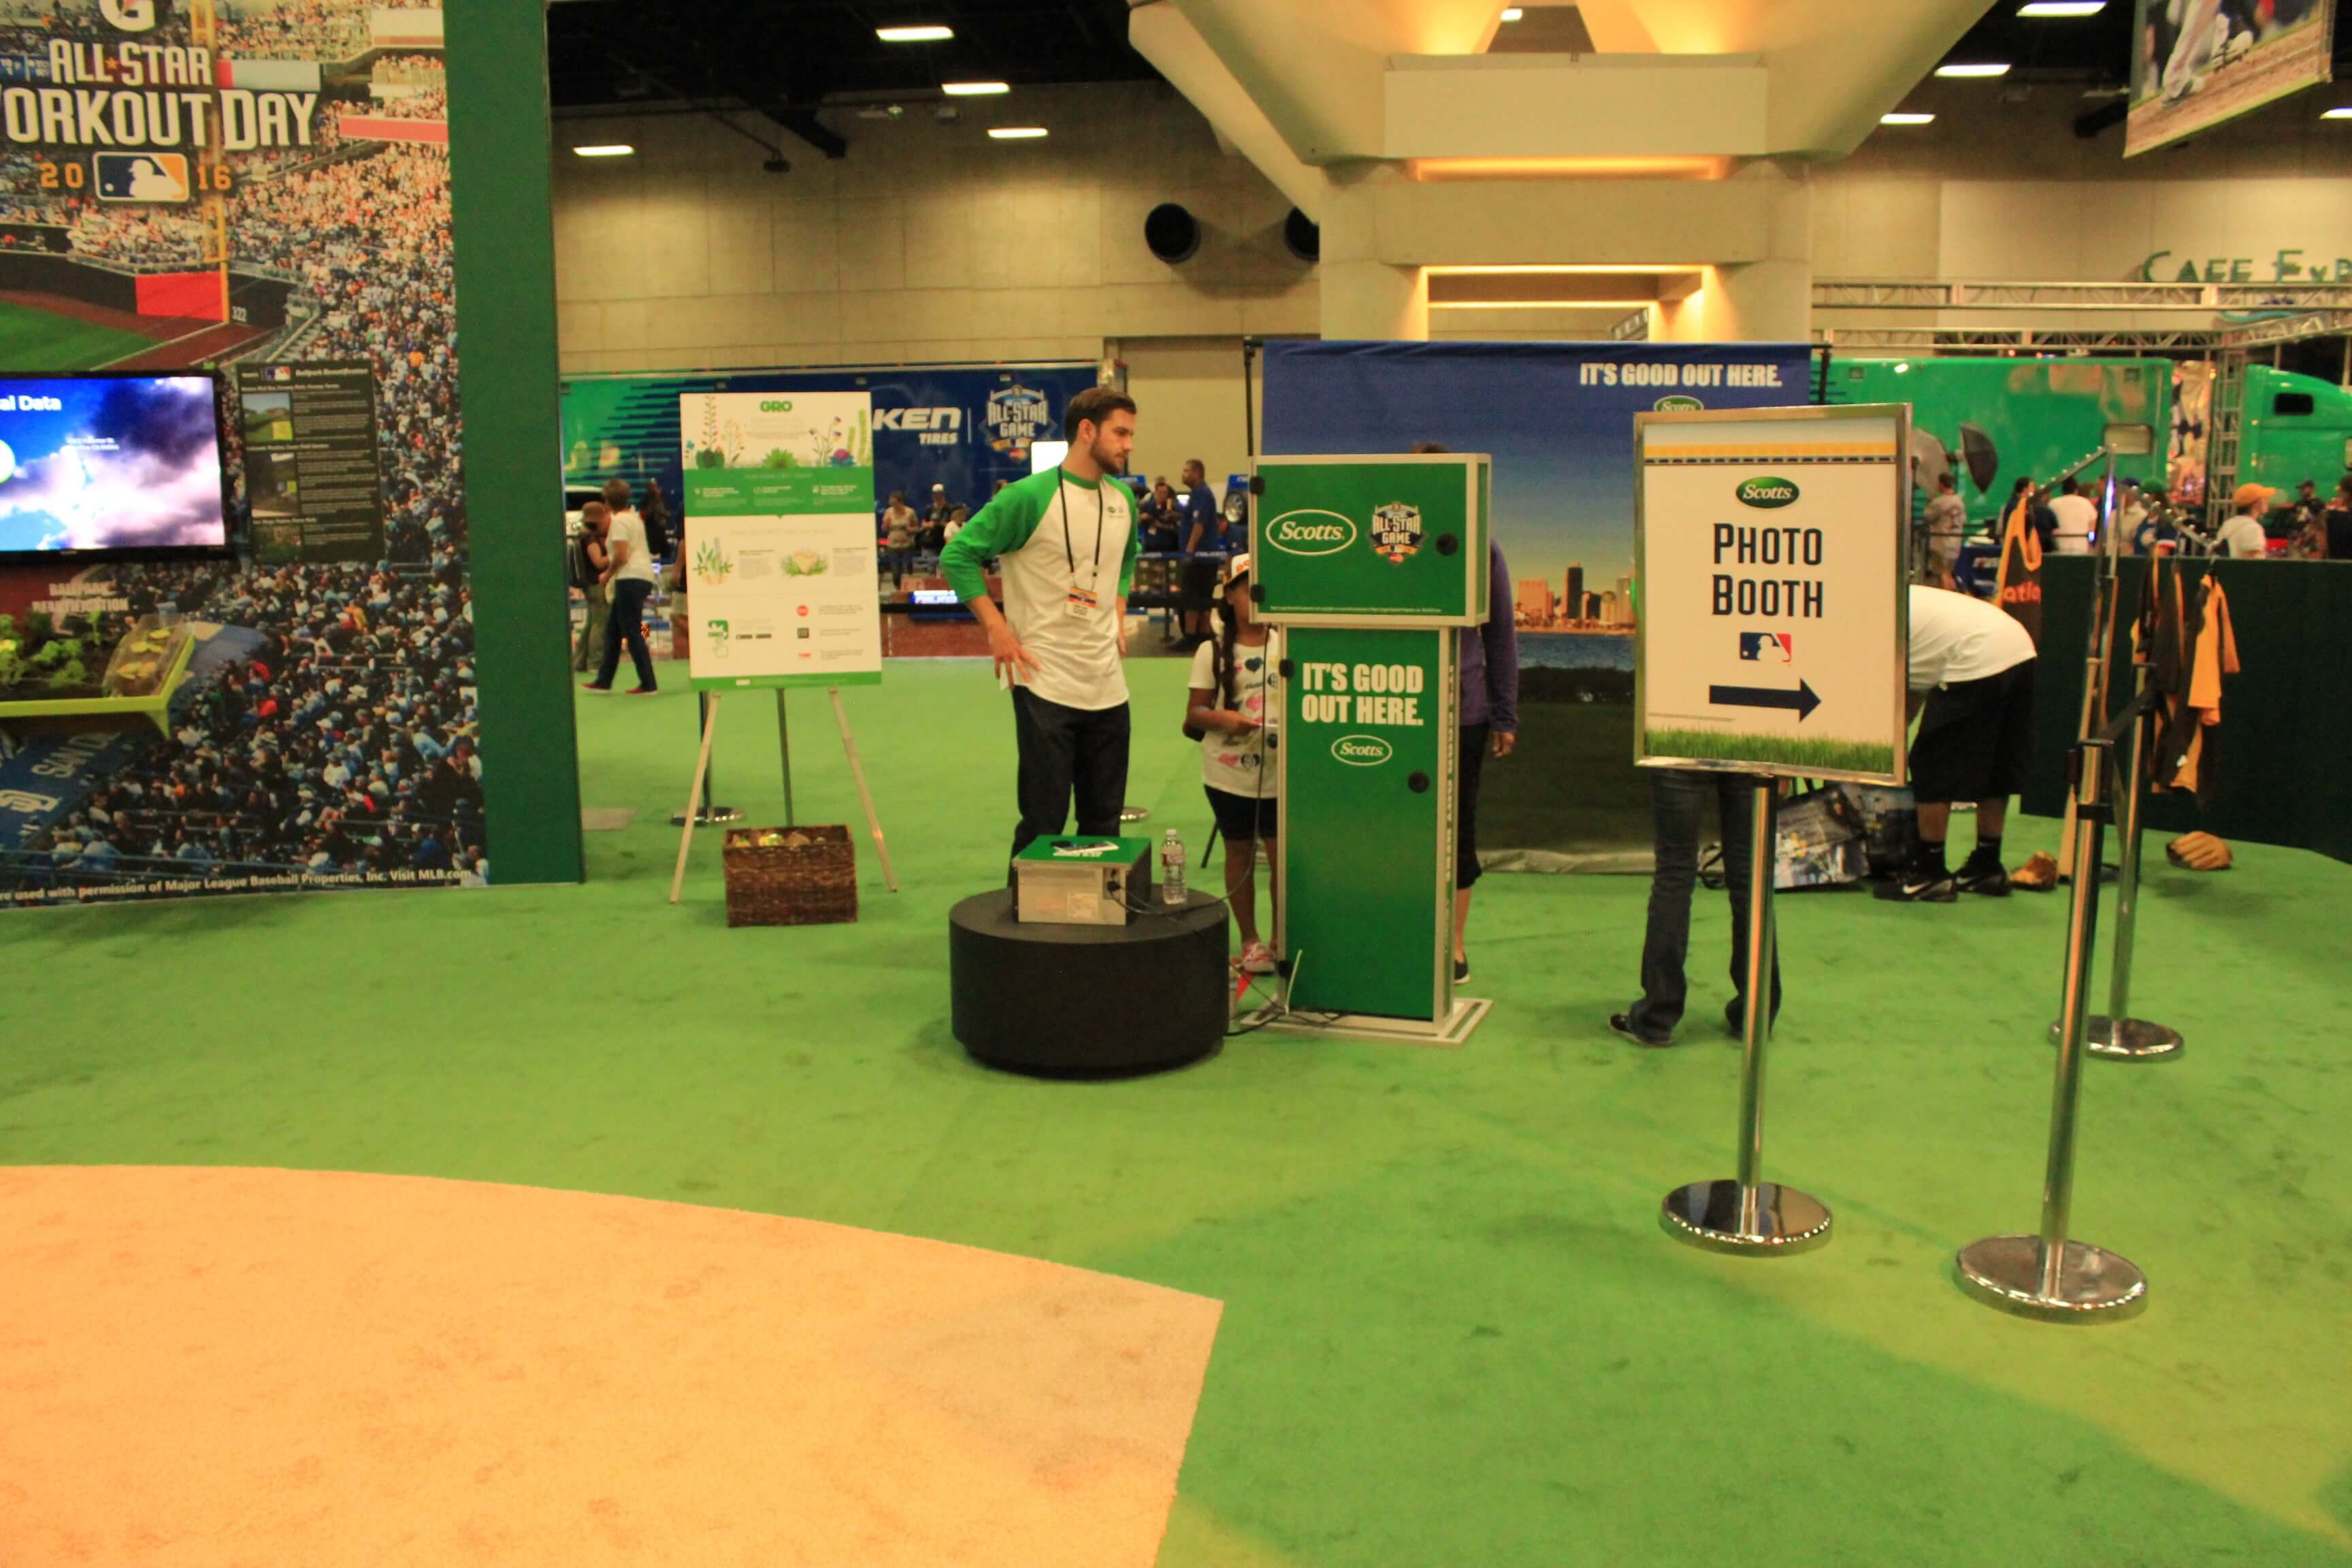 mlb fan fest social photo booth activation